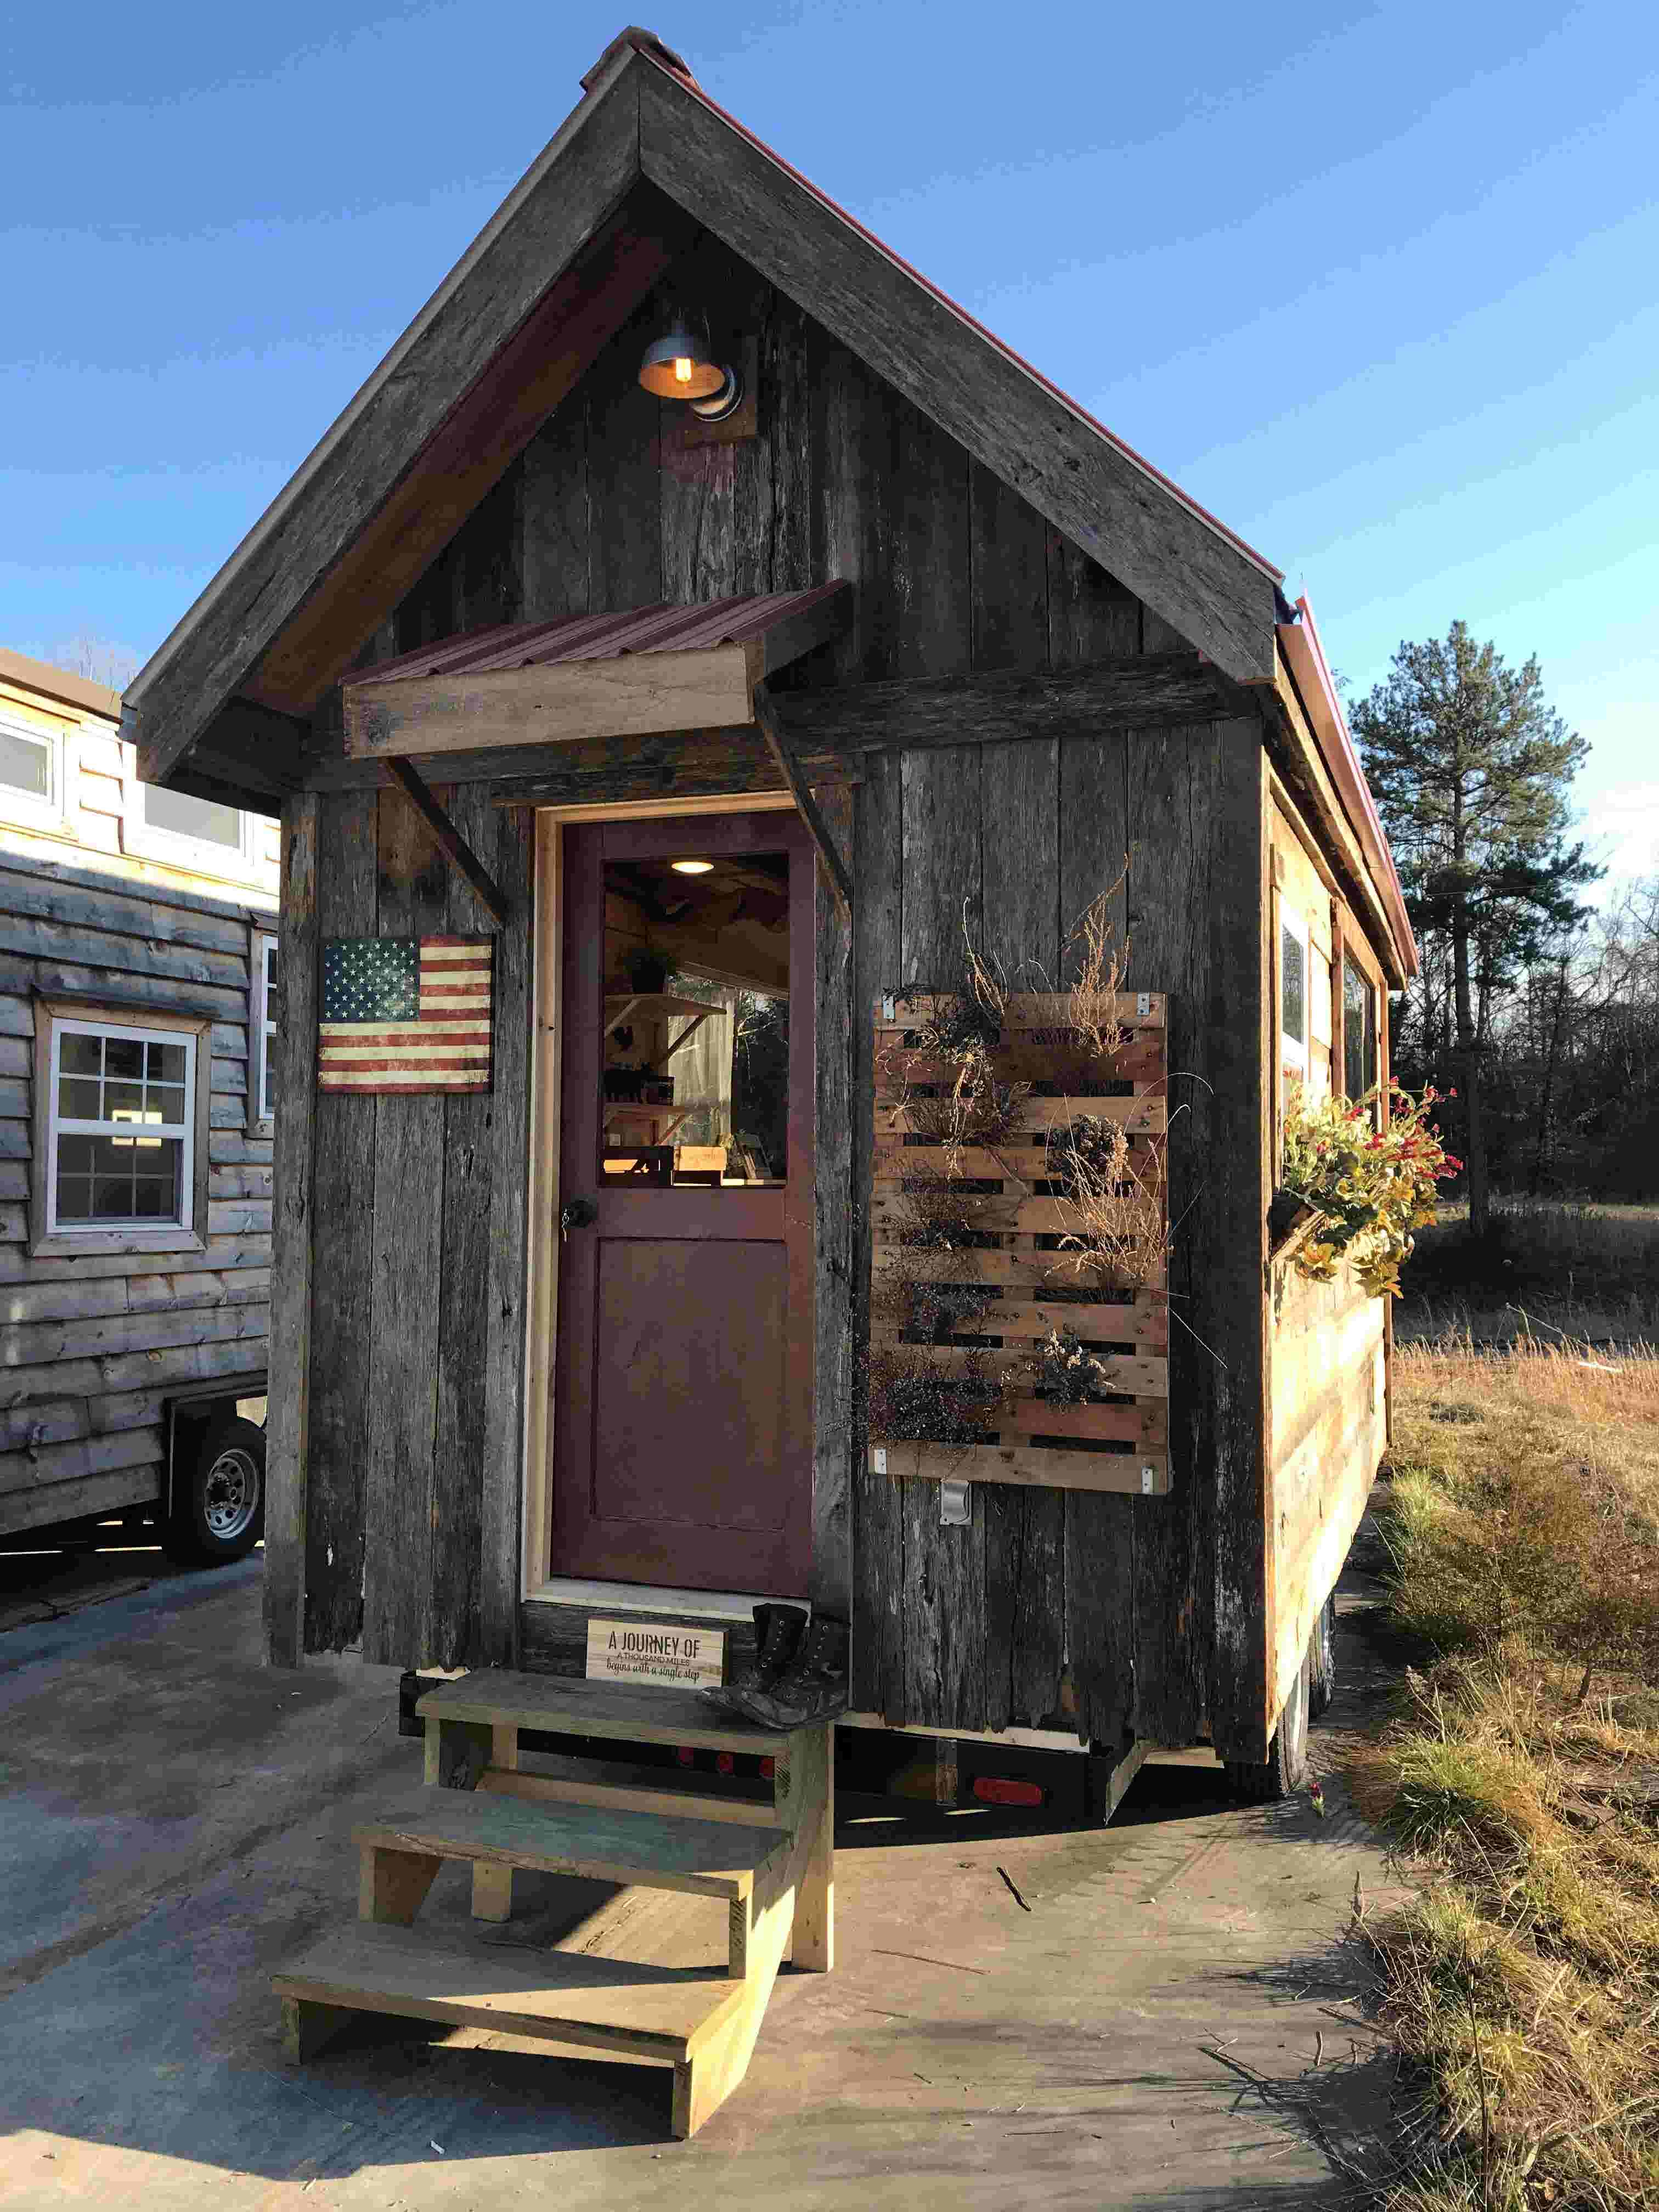 Astonishing Tiny Home Community Planned For East Tennessee By Incredible Download Free Architecture Designs Estepponolmadebymaigaardcom